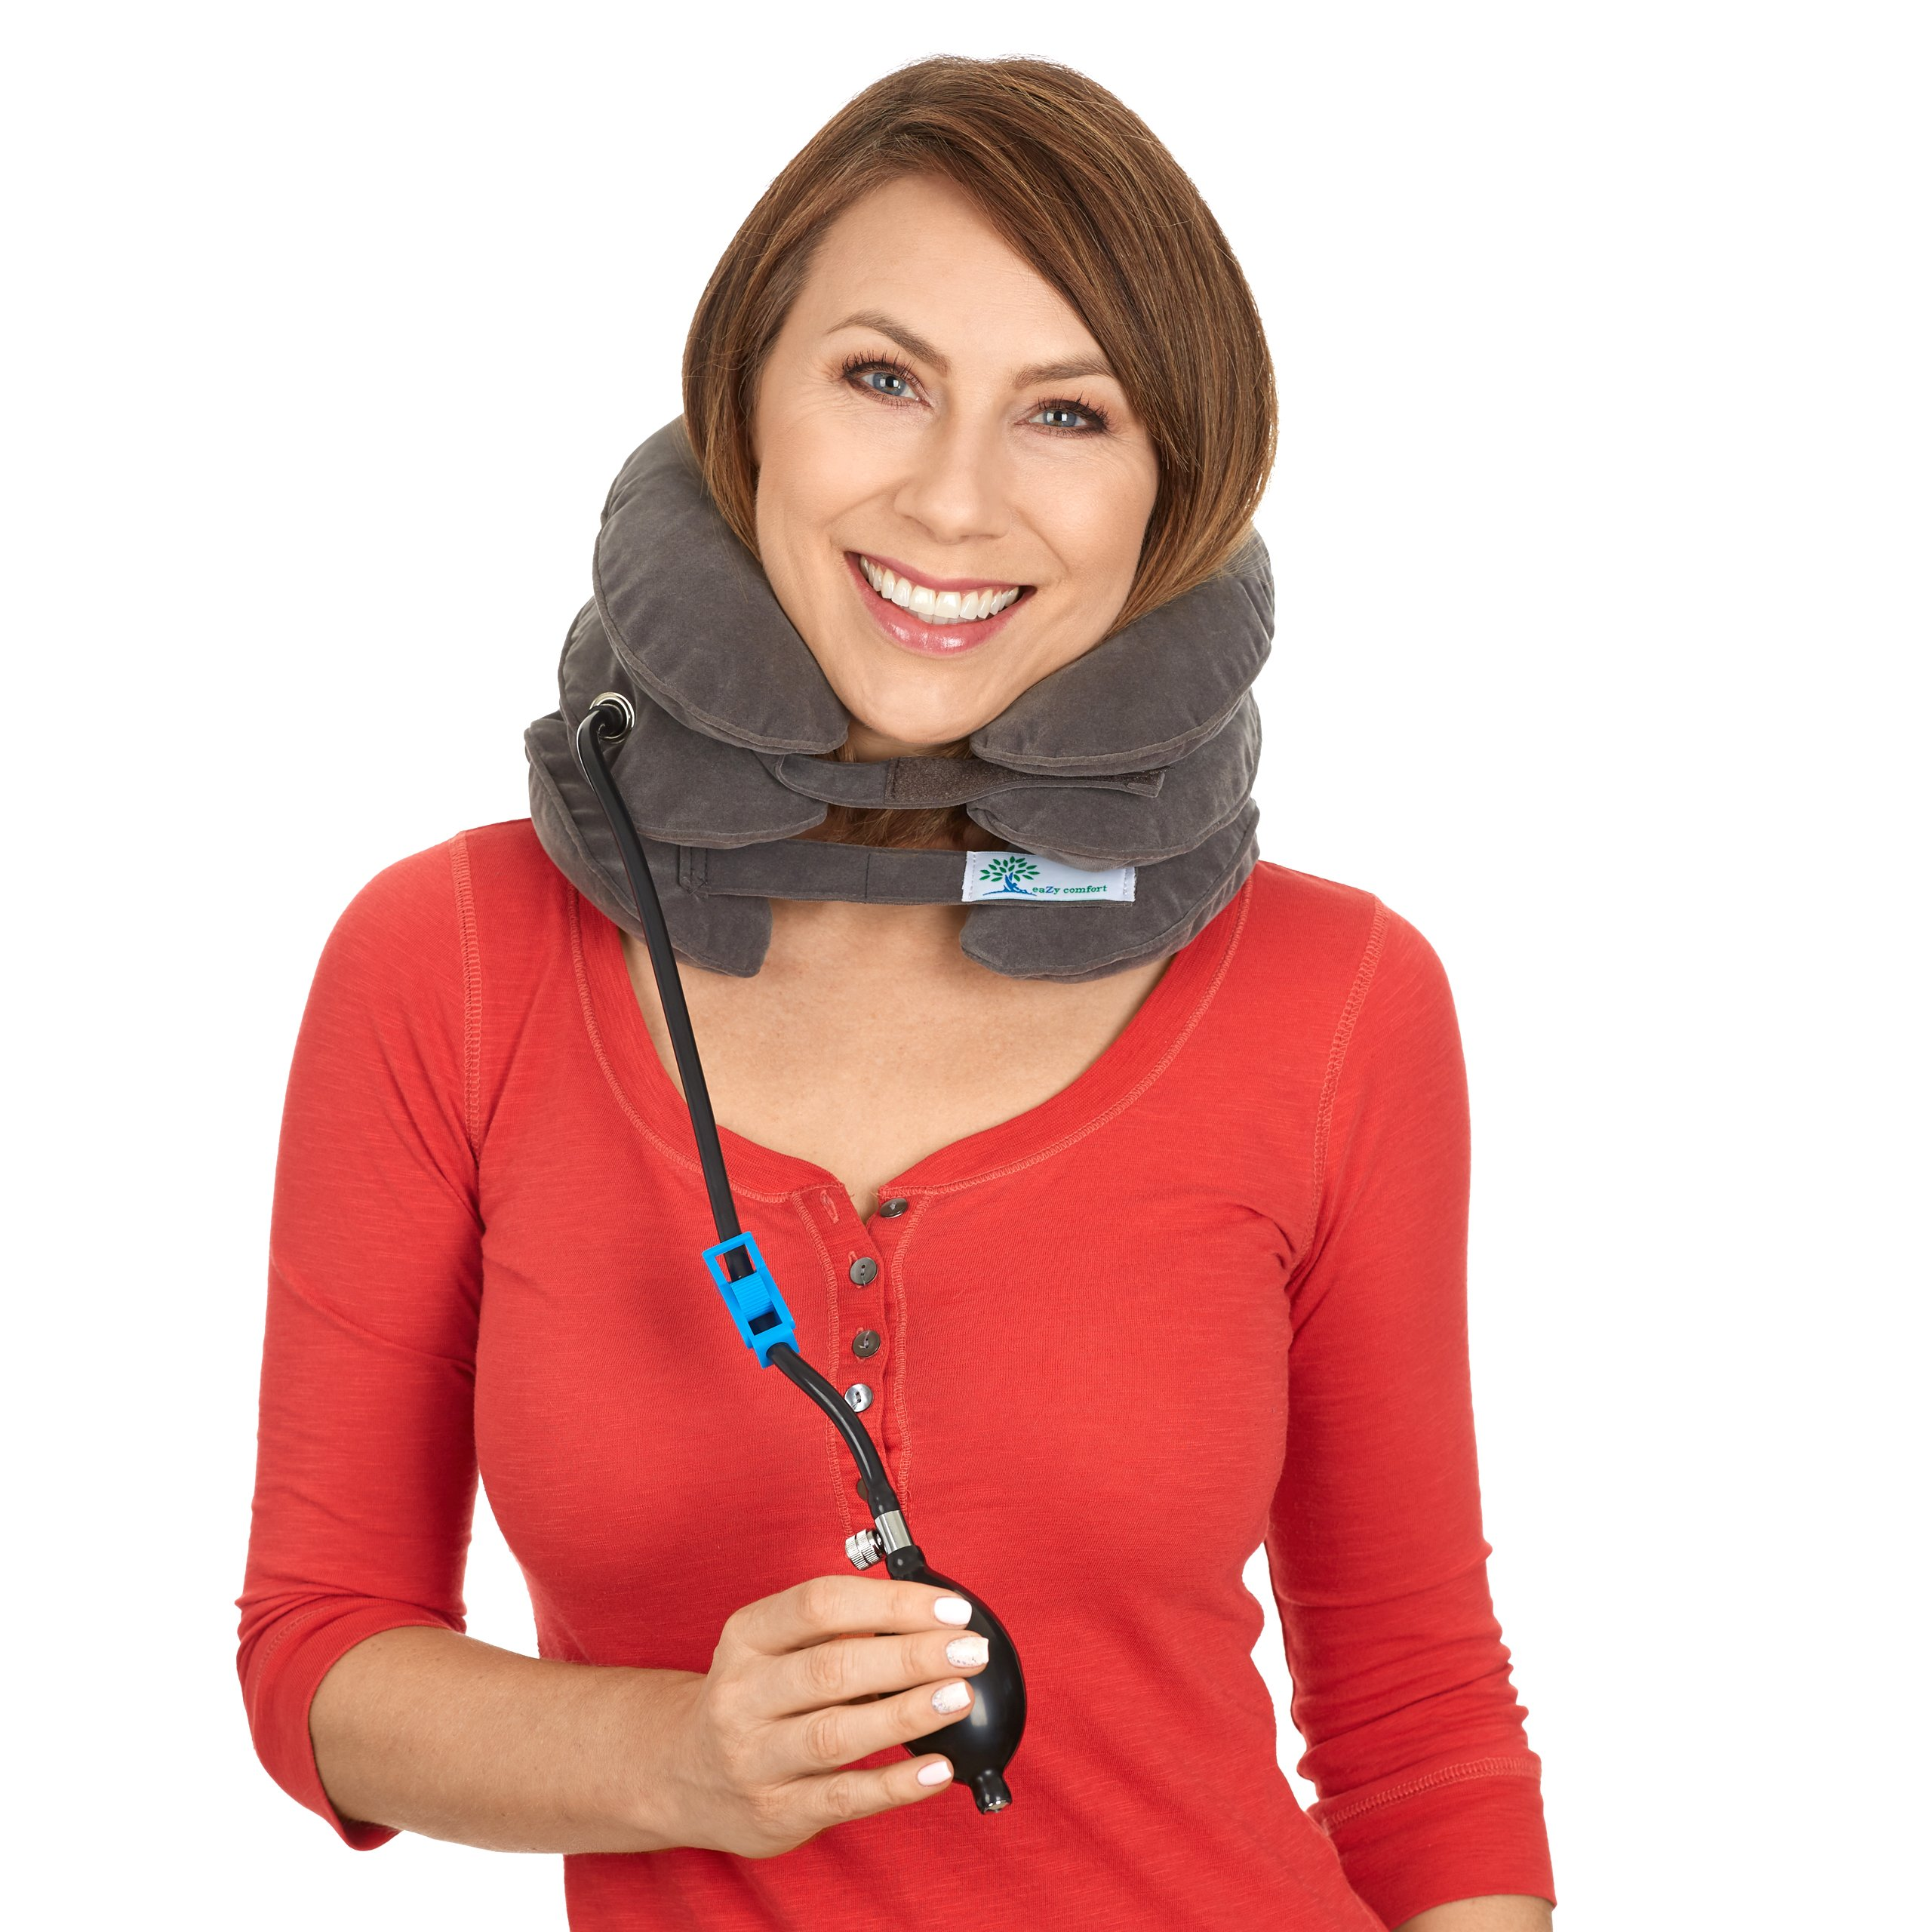 Cervical Neck Traction Device - by Eazy Comfort - Adjustable Home Inflatable Pillow Collar - FDA Registered - Portable Air Unit With Quick Pump - OTC Neck Extender - Pro Spinal Therapy for Pain Relief